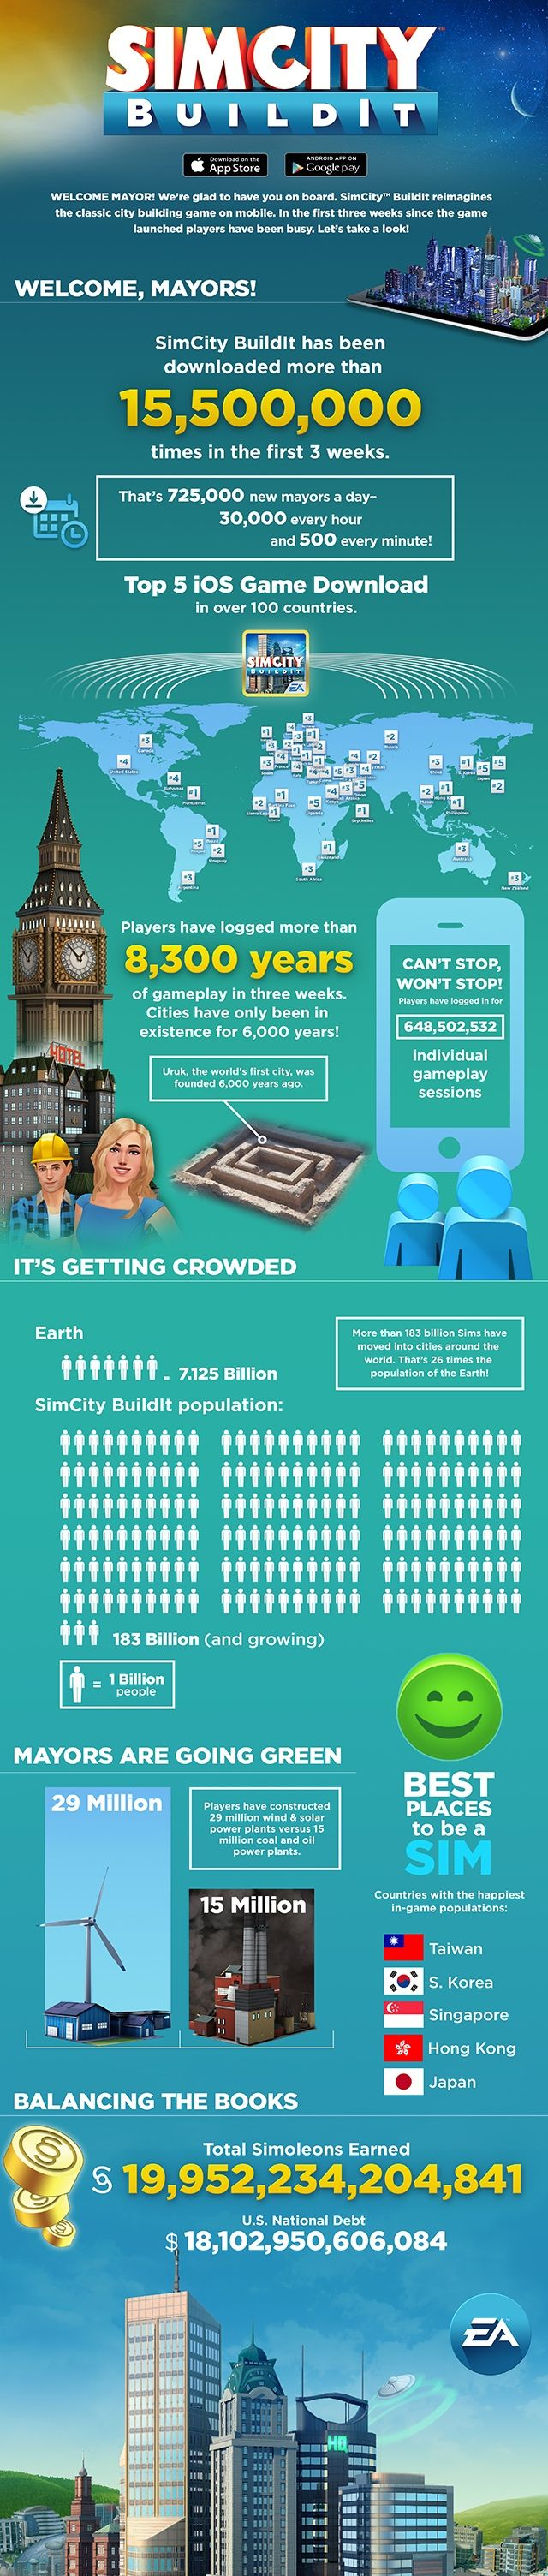 SimCity BuildIt Infographic #sims #videogames